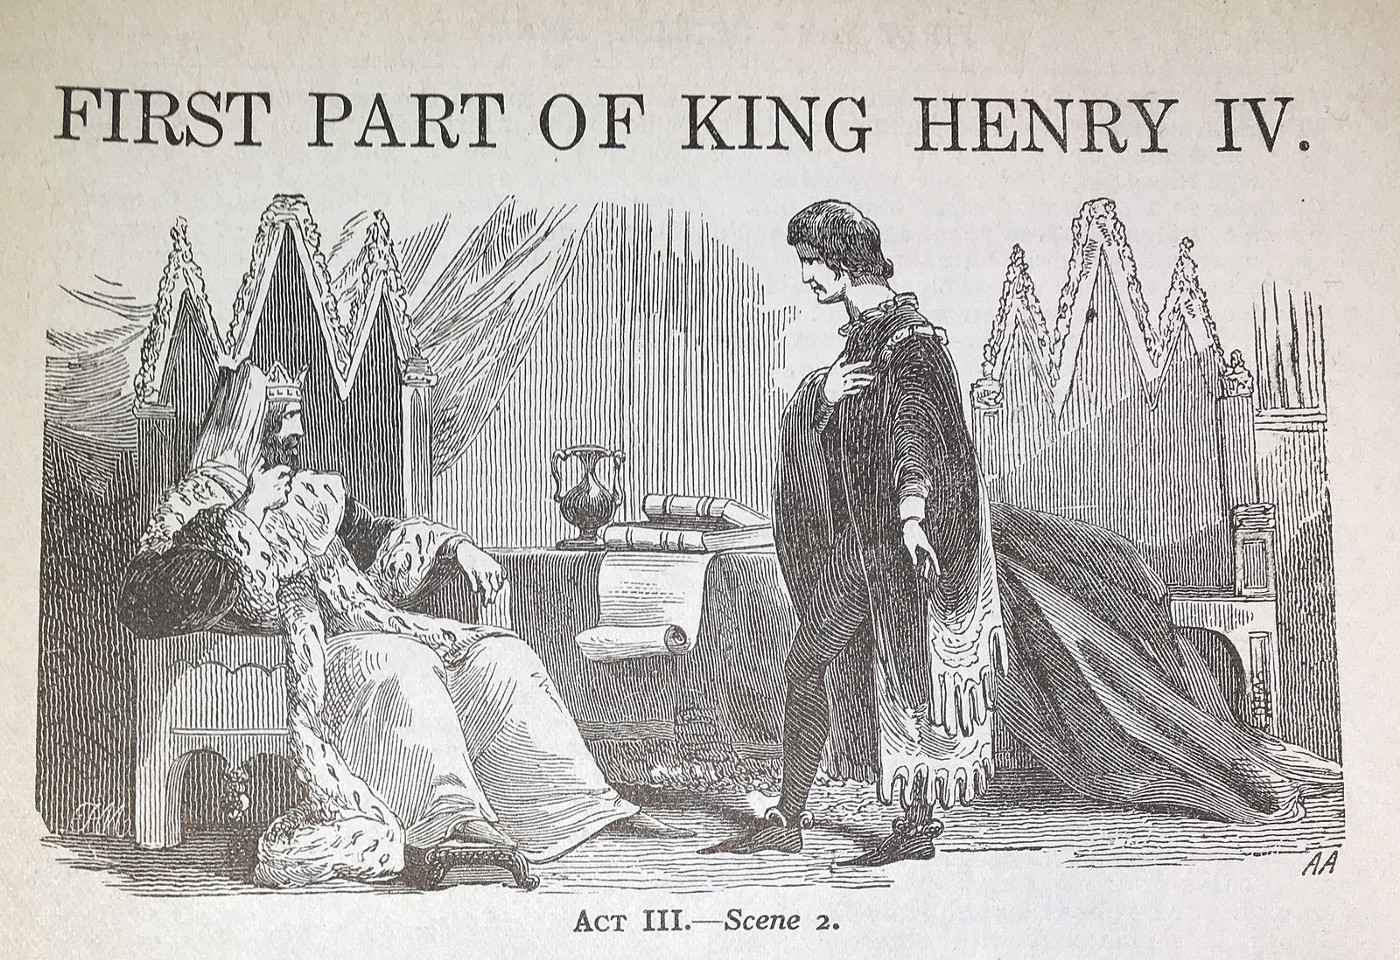 A Scene from Henry IV, Part 1 (Source: Wikipedia)